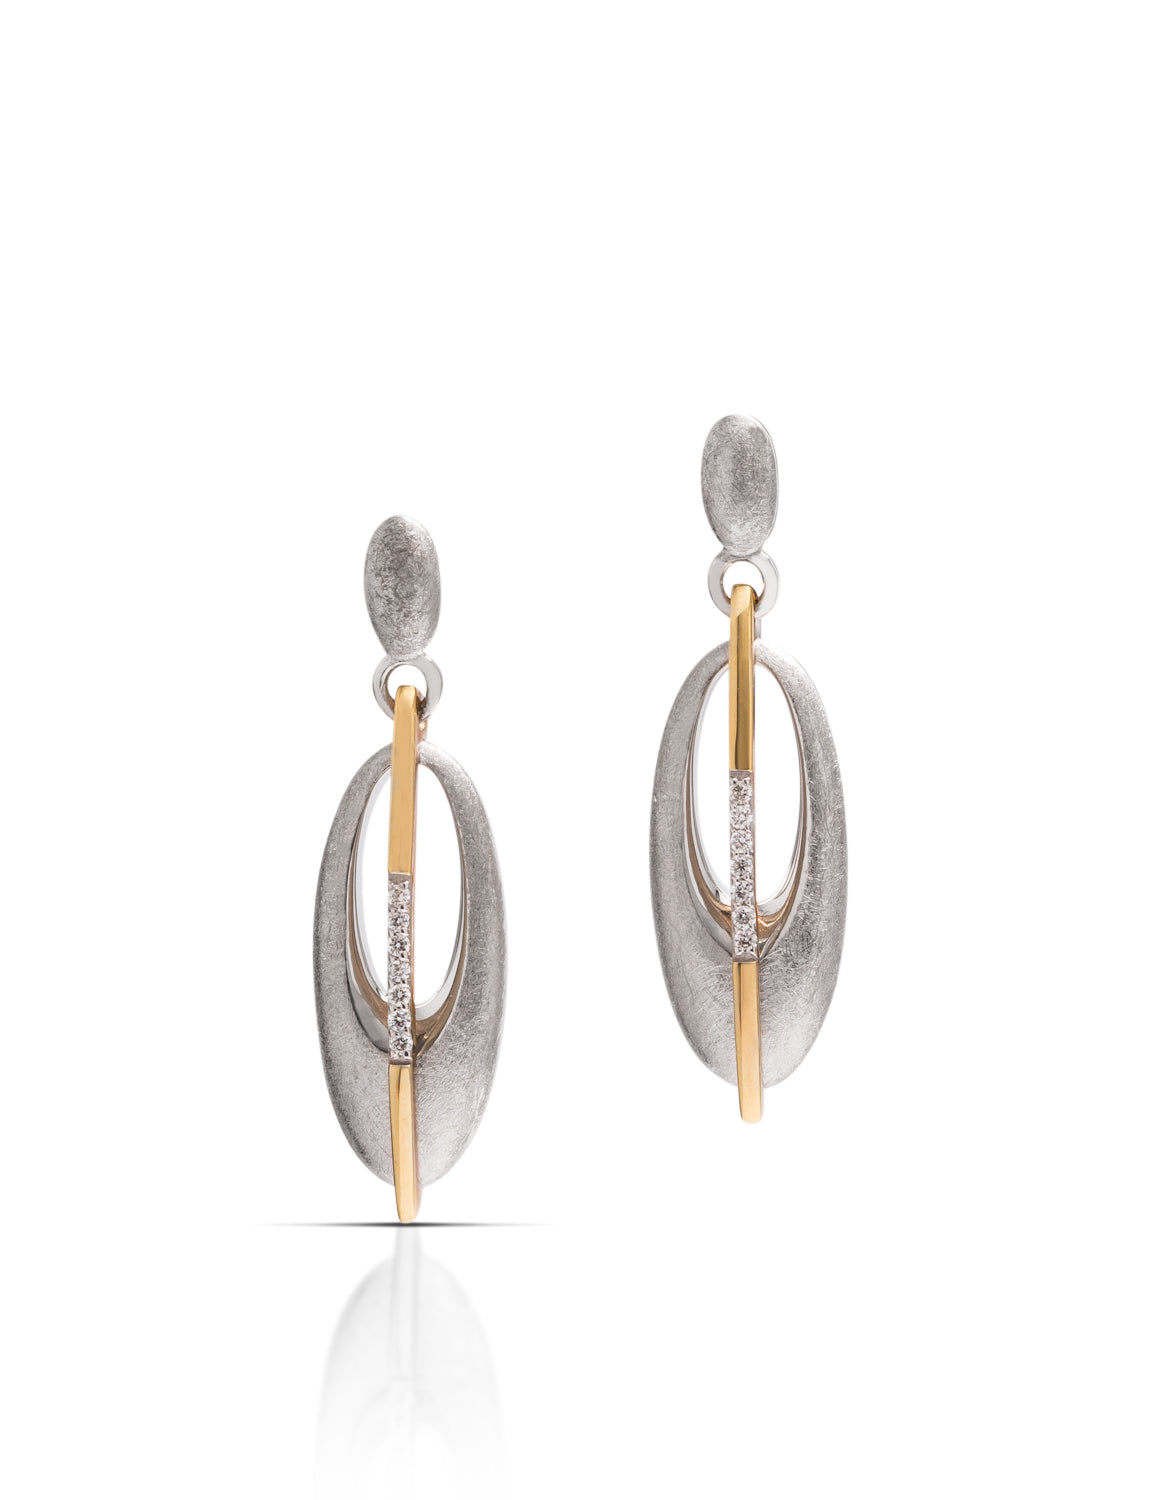 Breuning Two-Tone Earrings - Charles Koll Jewellers